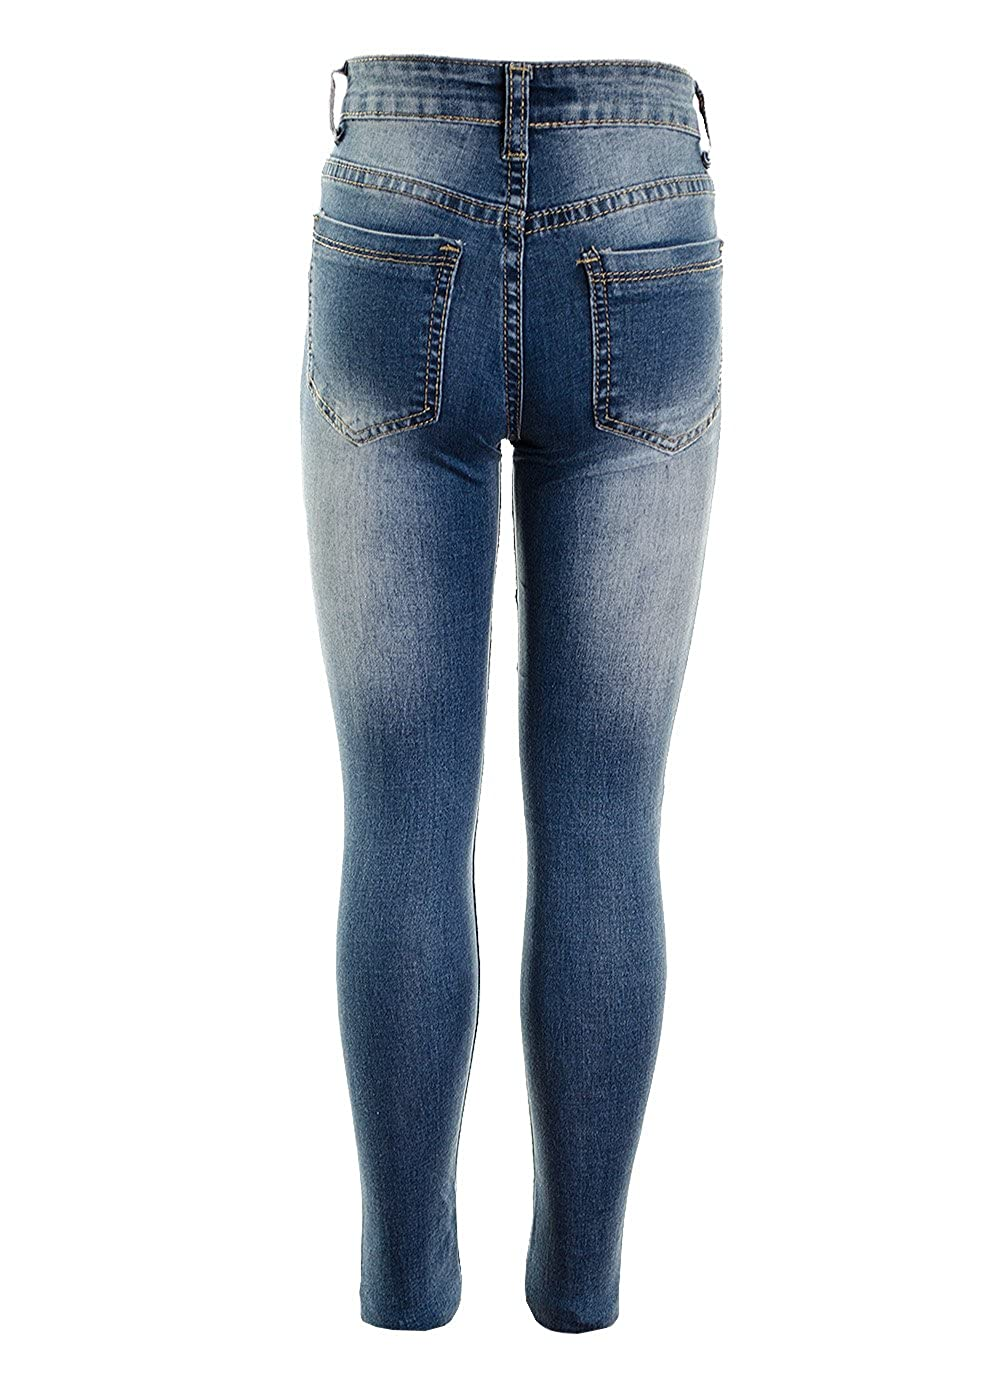 Fuchia boutique Girls Multi Ripped Distressed Frayed Jean Stretch Skinny Jeans Age 5-13